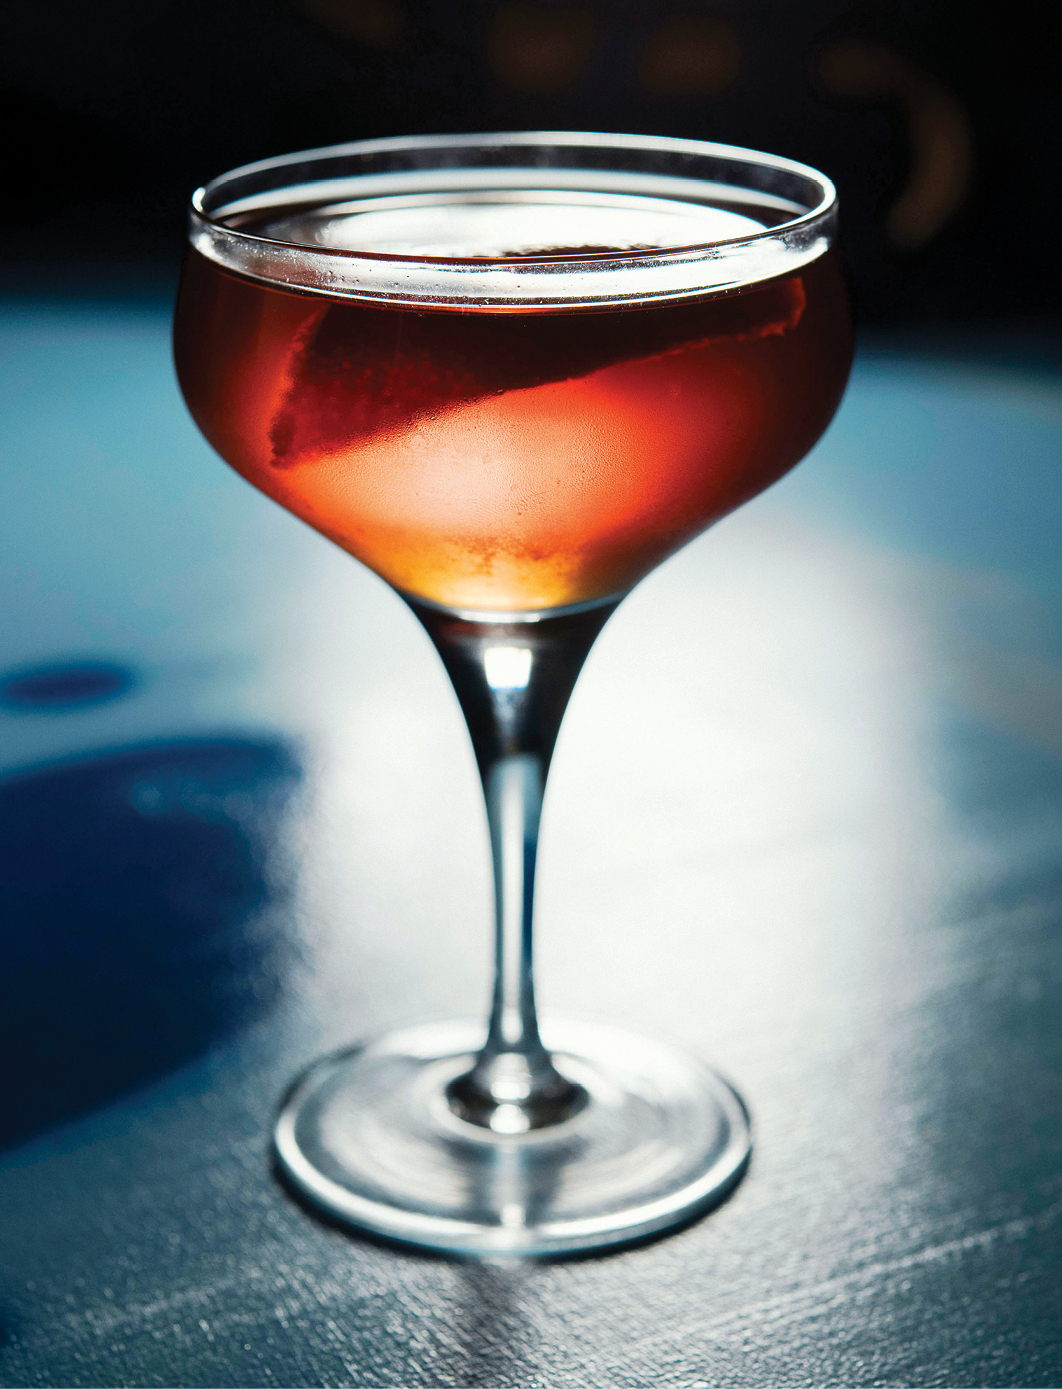 Affinity cocktail recipe